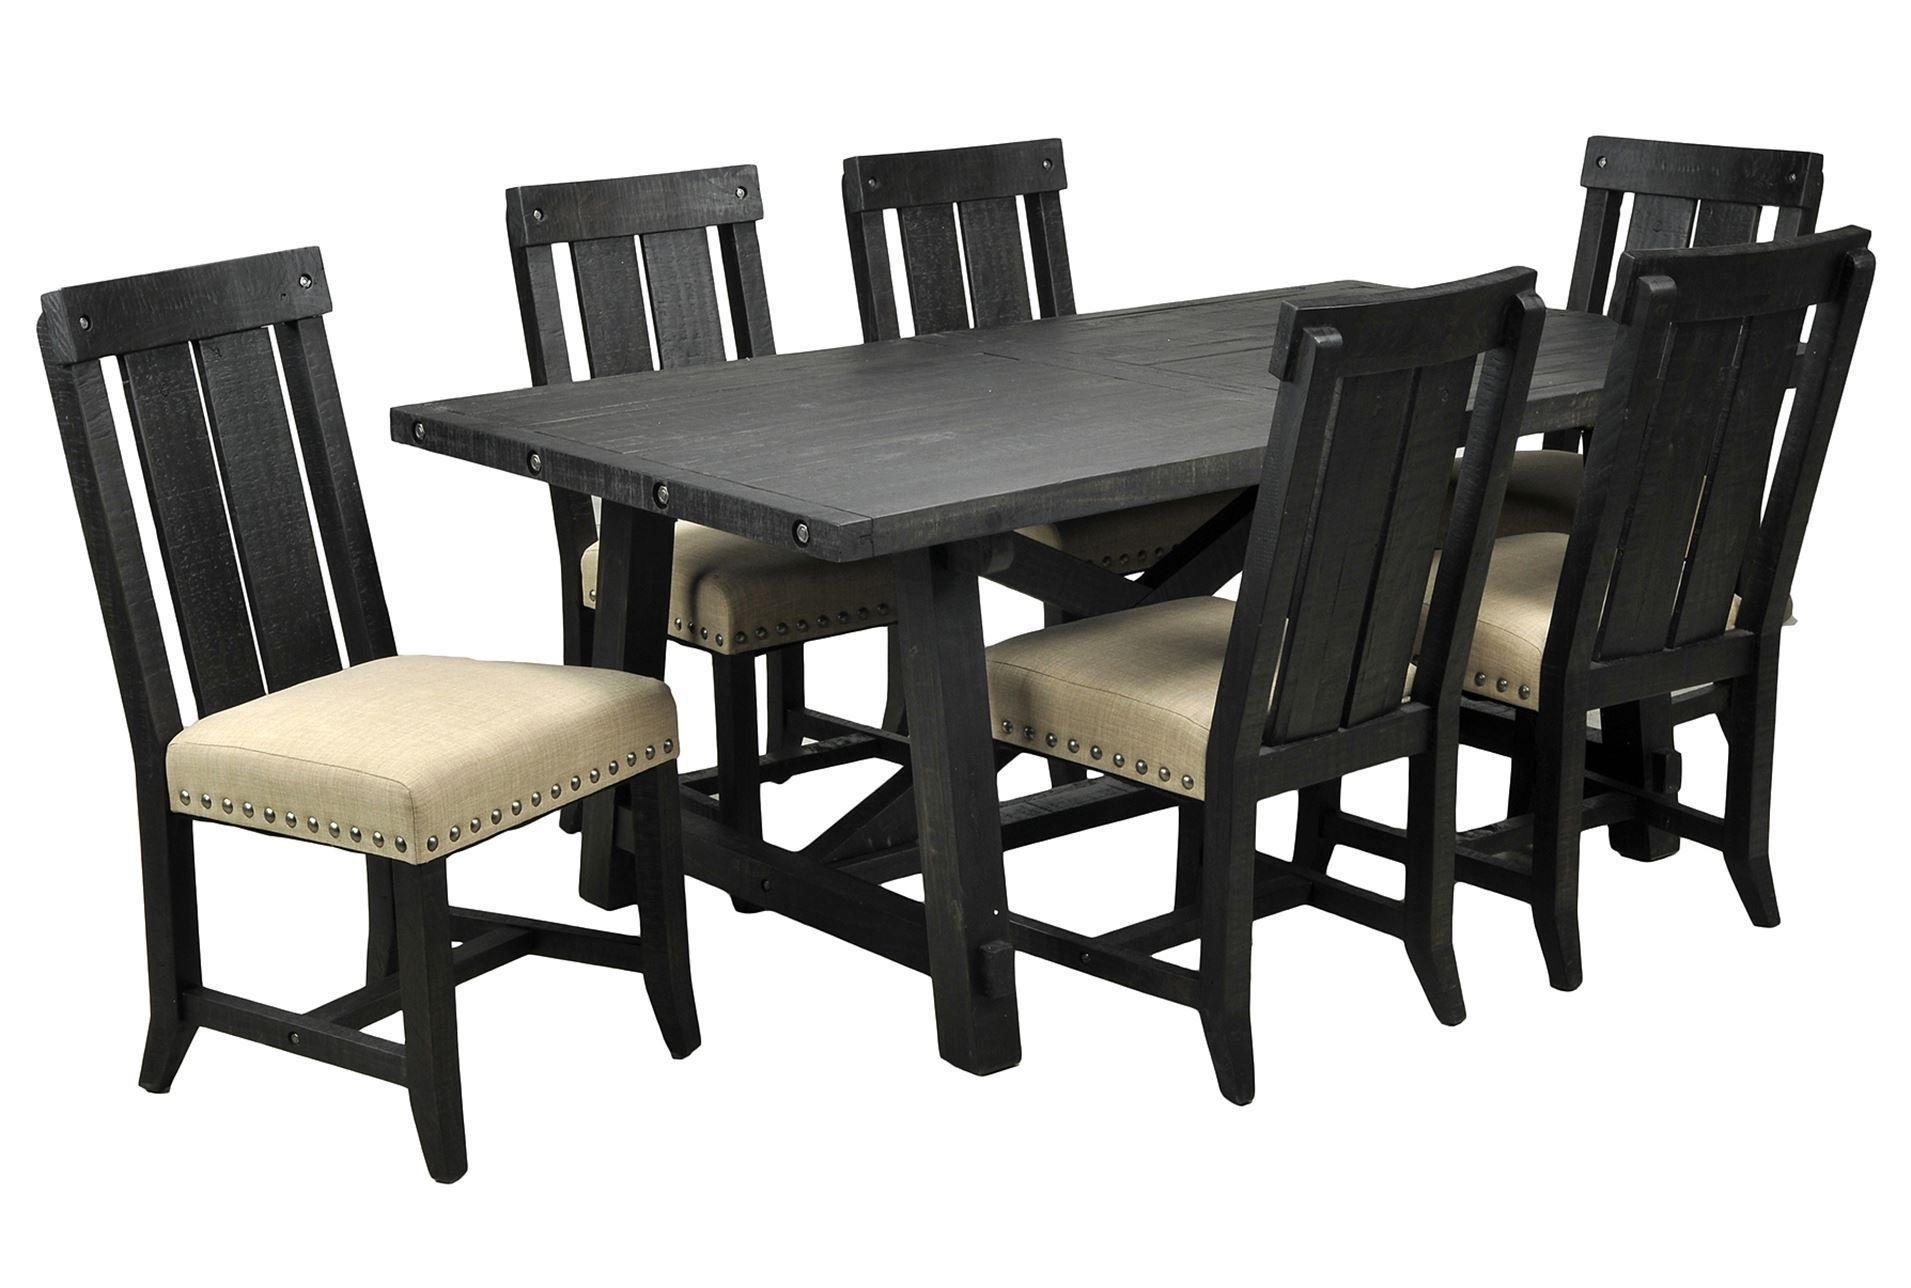 Jaxon 7 Piece Rectangle Dining Set W/wood Chairs | Sespe 3 General With Most Up To Date Jaxon 6 Piece Rectangle Dining Sets With Bench & Wood Chairs (Photo 4 of 20)